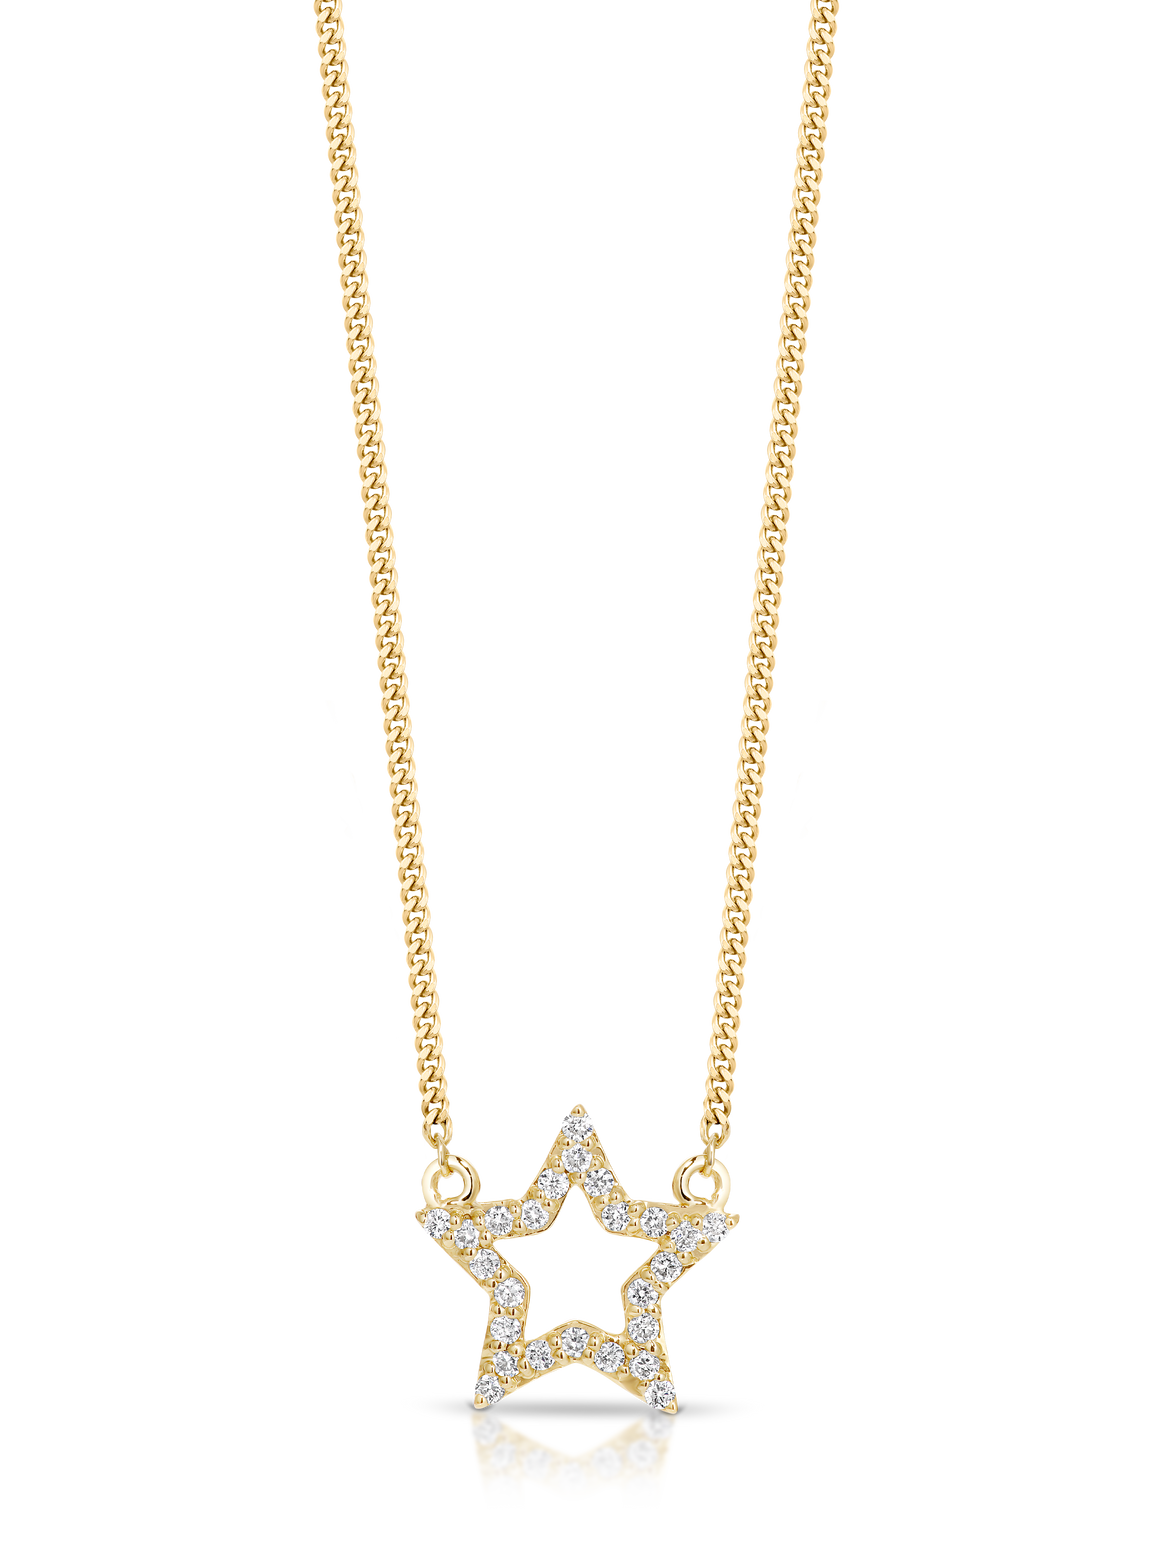 9ct Gold and Diamond 'Star' Necklace - Gemma Stone  ABN:51 621 127 866